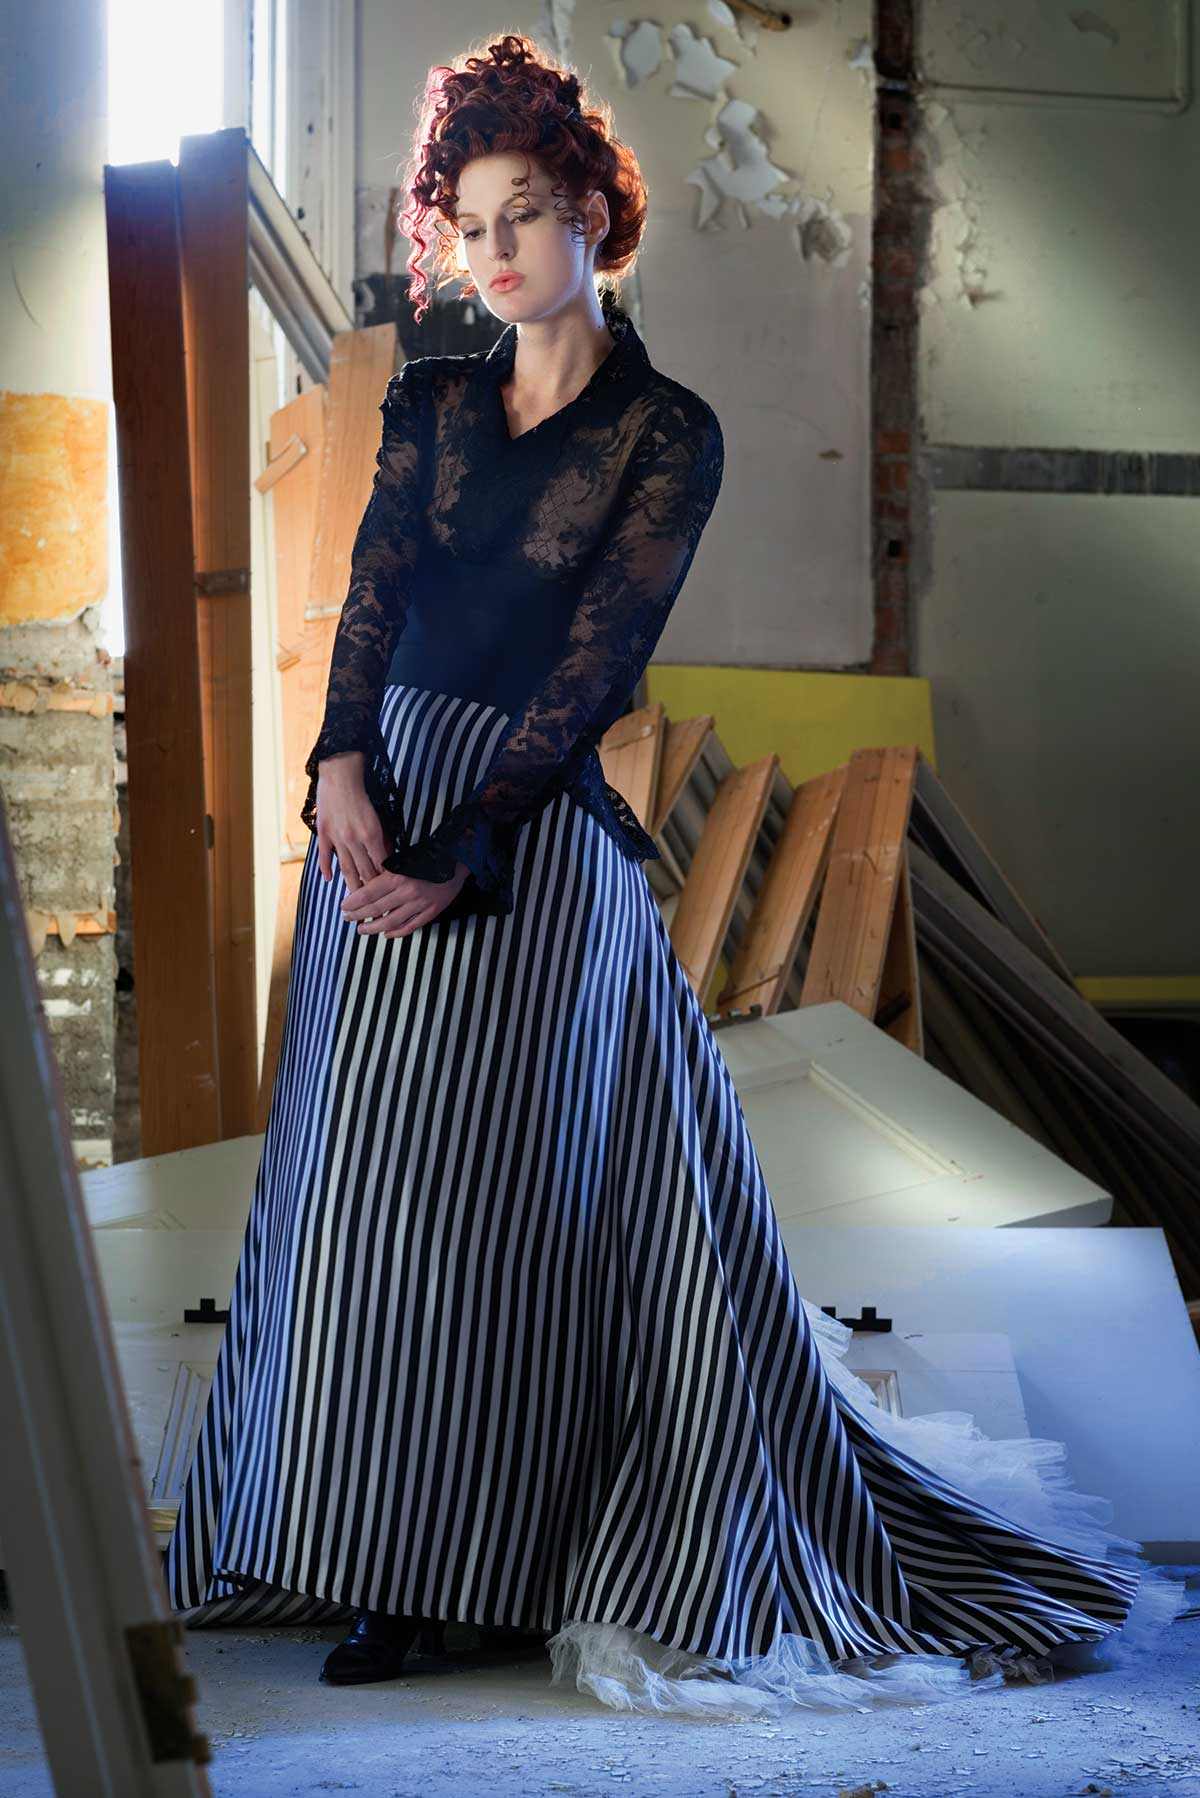 Gibson-Girl_Constance-McCardle FAshion Design | Photography: Rick Luettke